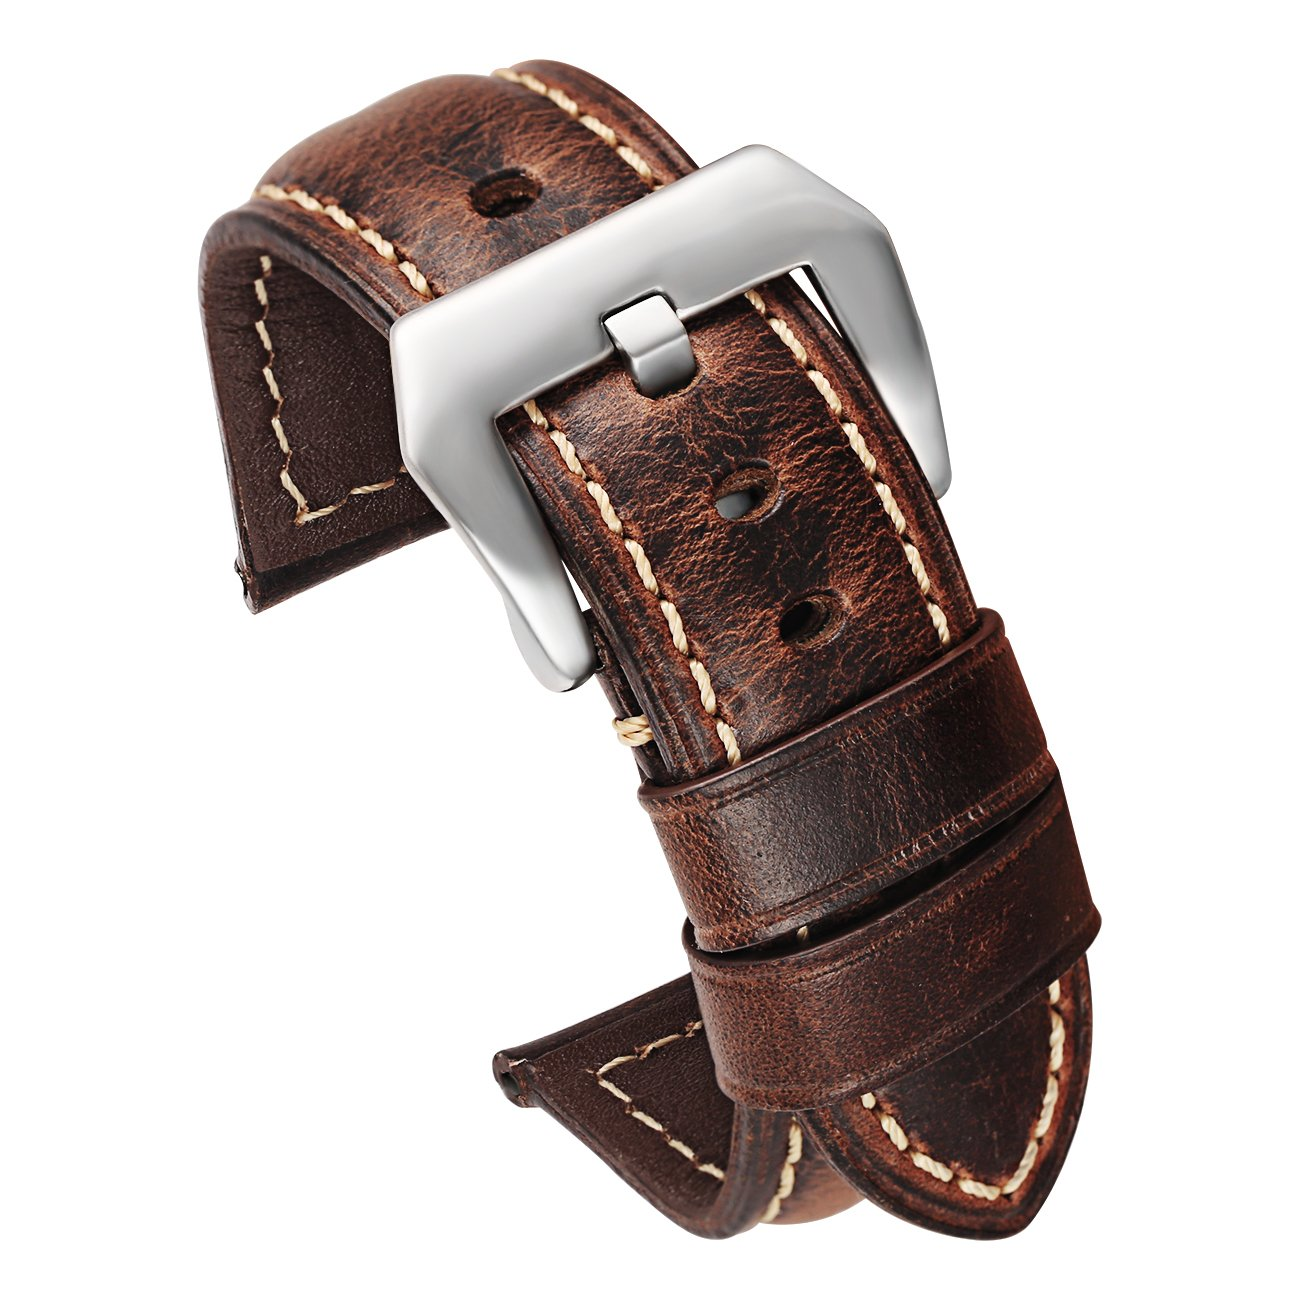 Coffee Leather Watch Strap 22mm Replacement Watch Band with Silver Stainless Buckle Calfskin